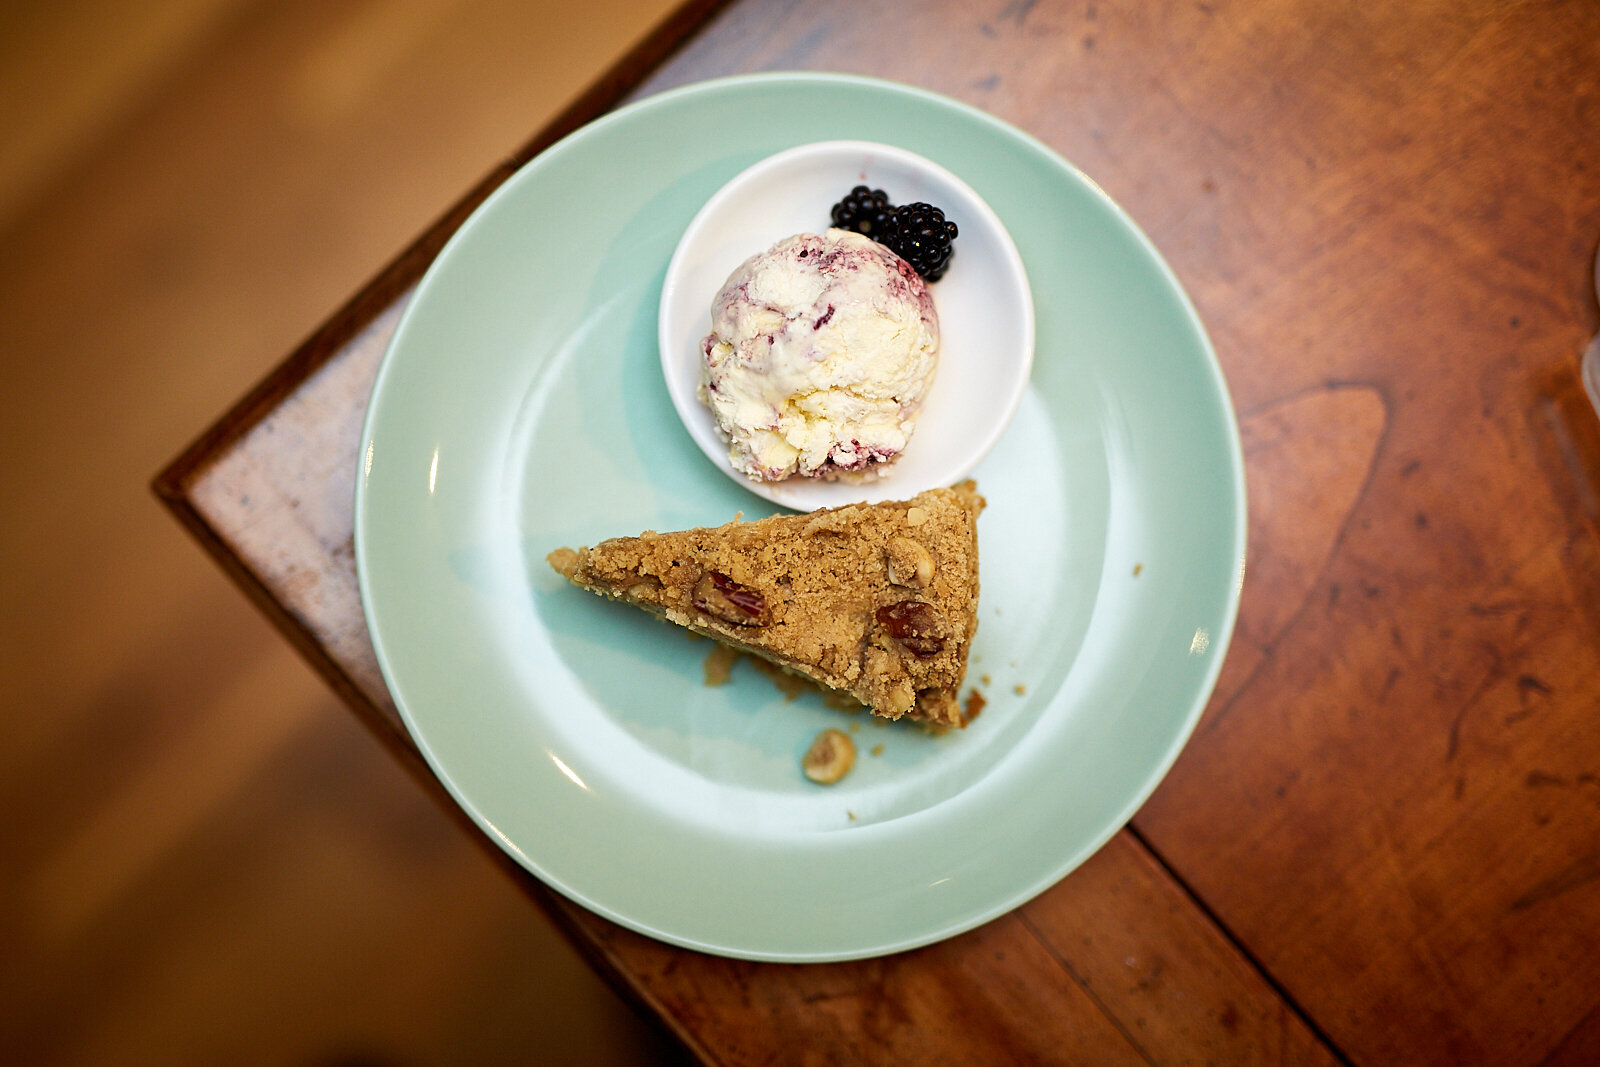 Apple and cinnamon streusel cake with blackberry and bay ice cream